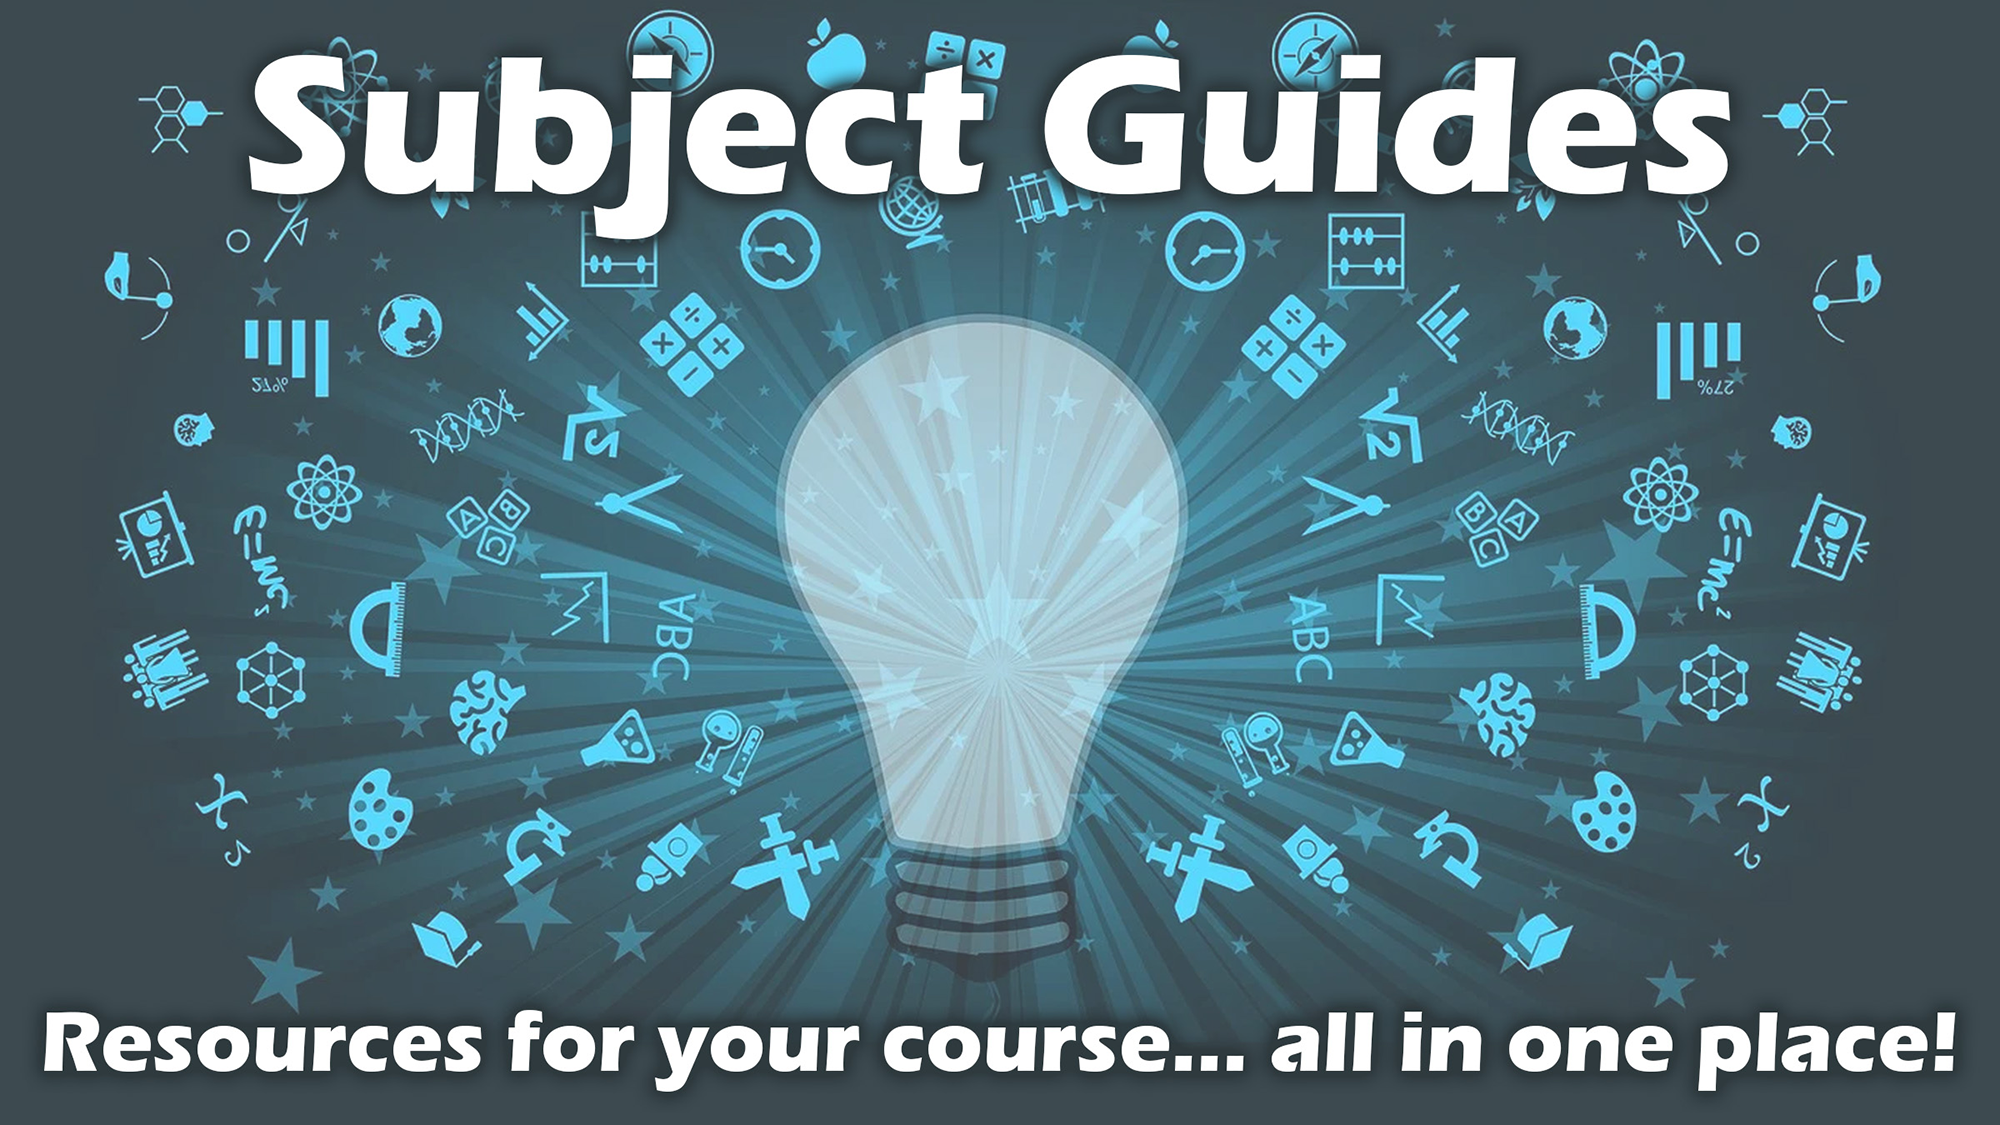 Subject Guides - Resources for your course... all in one place!